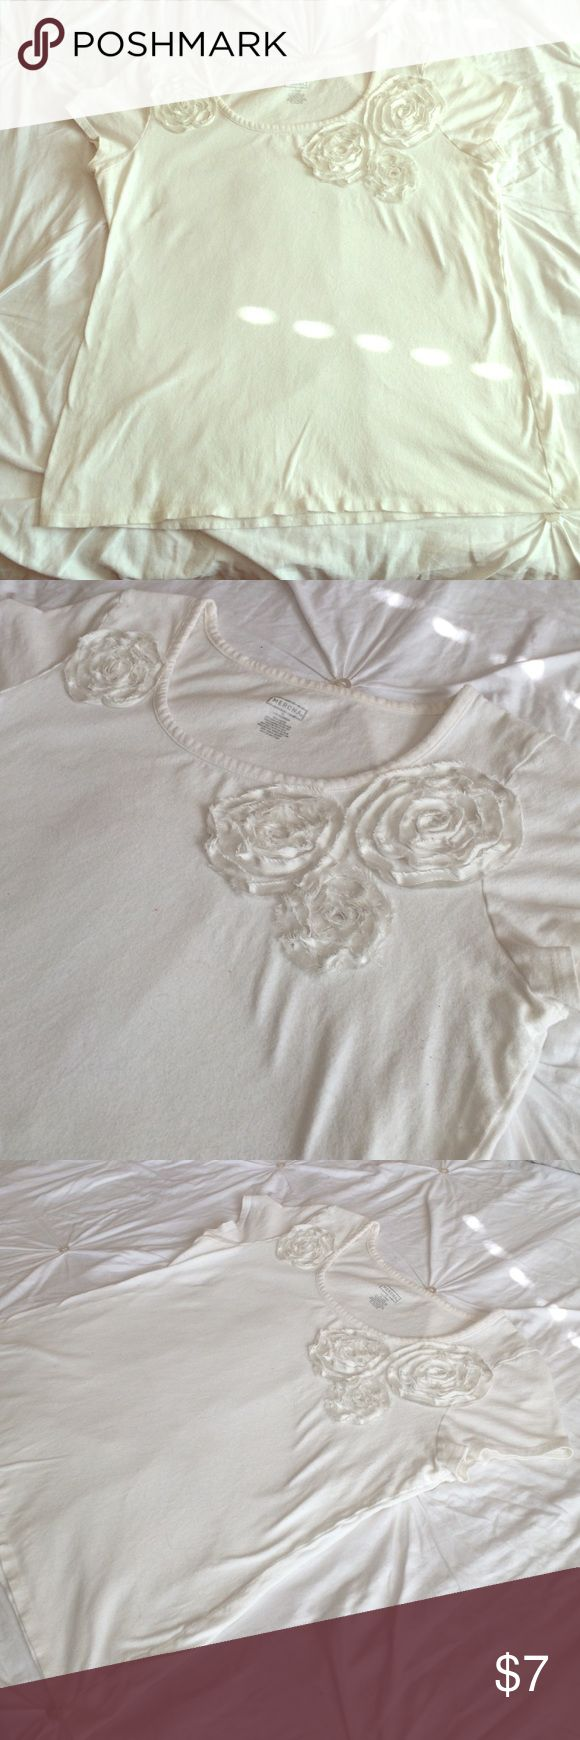 Cream Tee with Flowers Has some wear to it; reflected in the price! Perfect casual tee for spring! Merona Tops